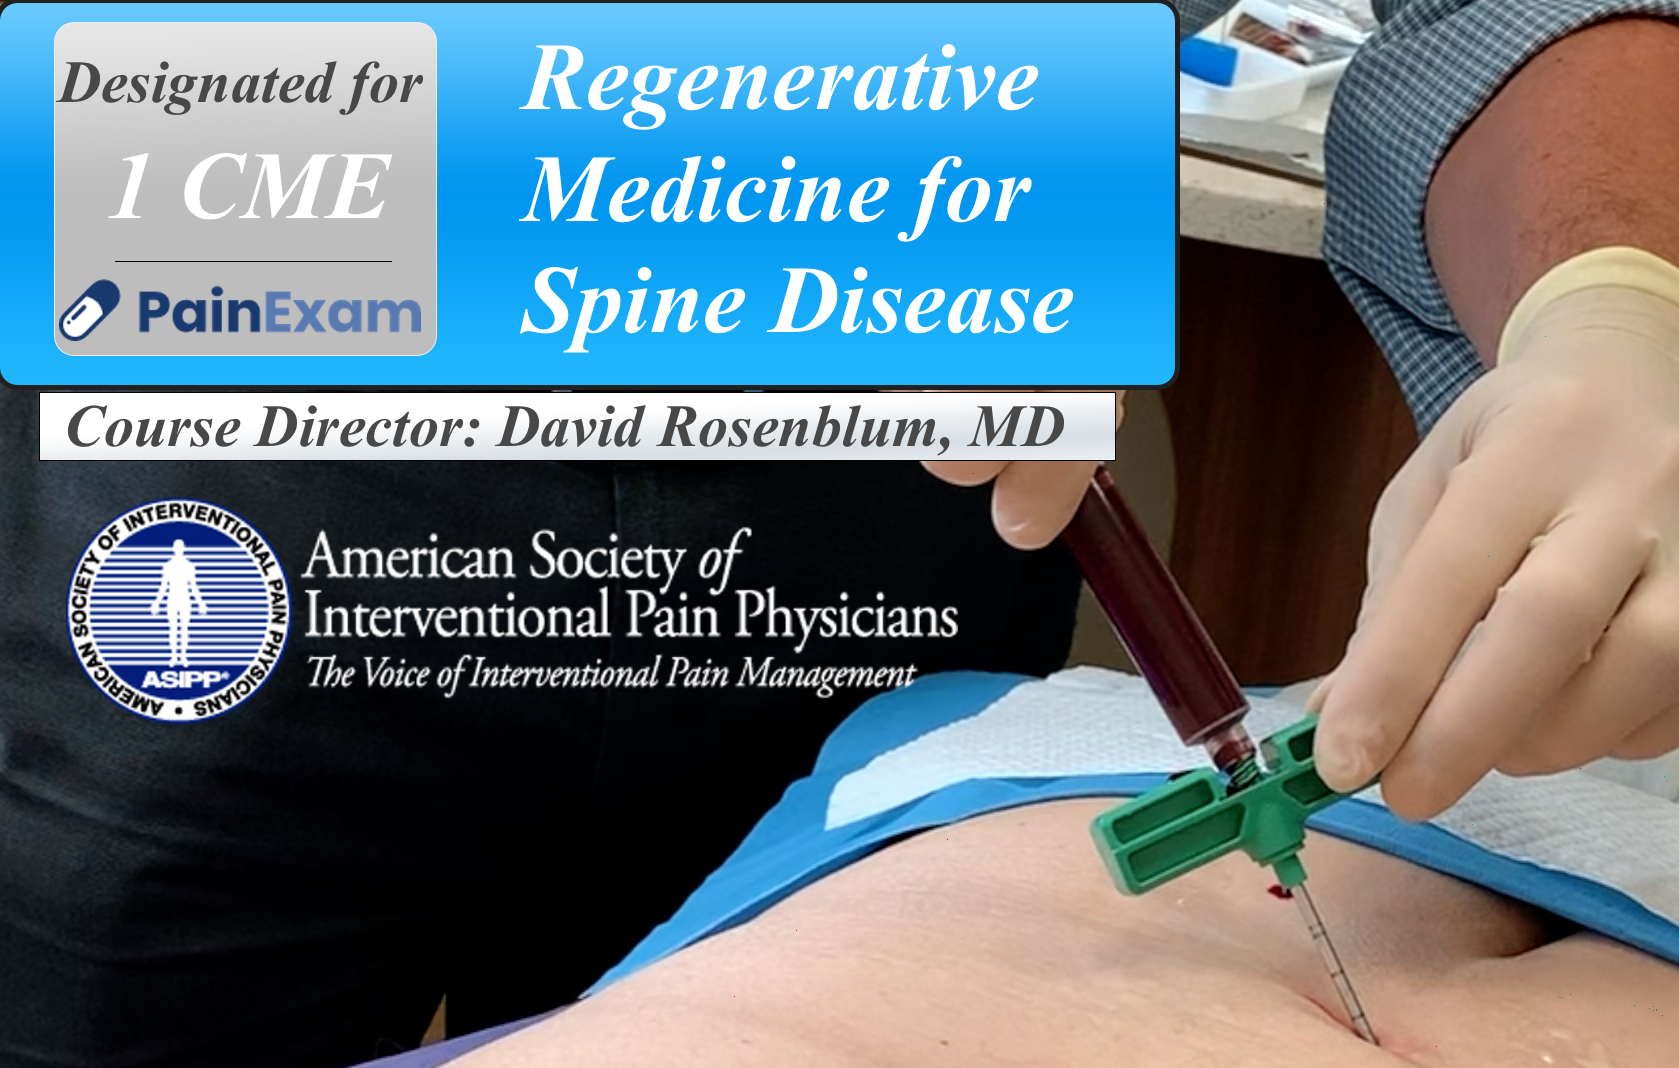 Regenerative Medicine for Spine Disease